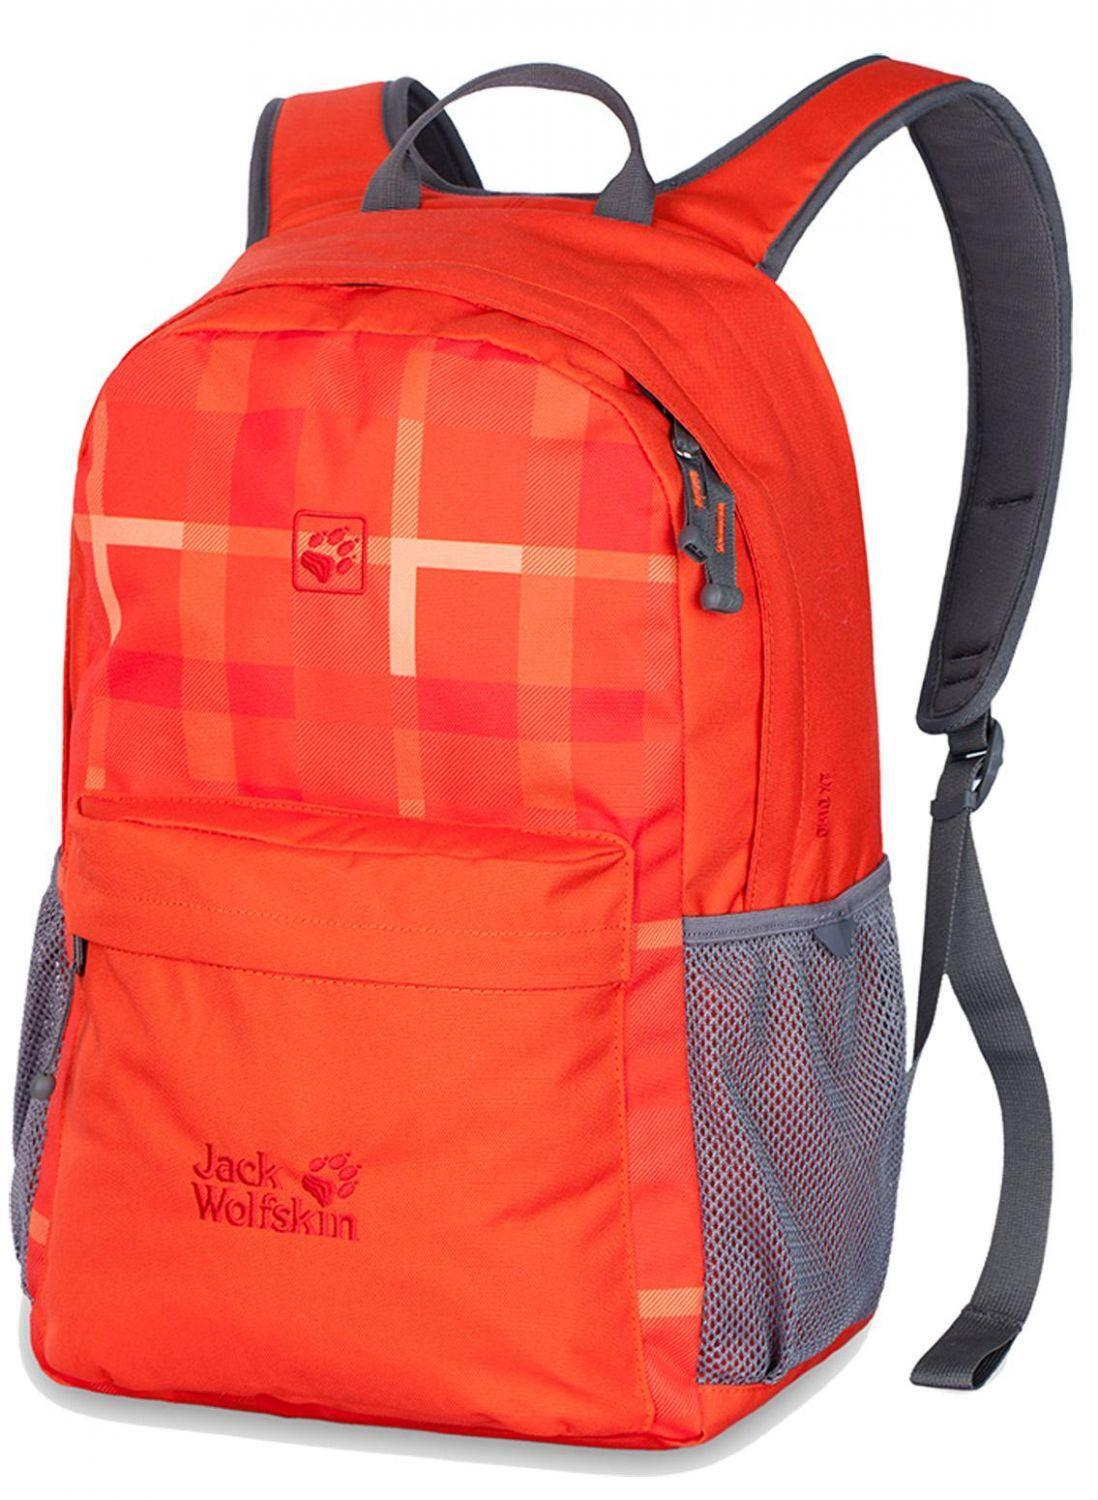 jack-wolfskin-ohio-xt-laptoprucksack-farbe-7939-lobster-red-woven-check-